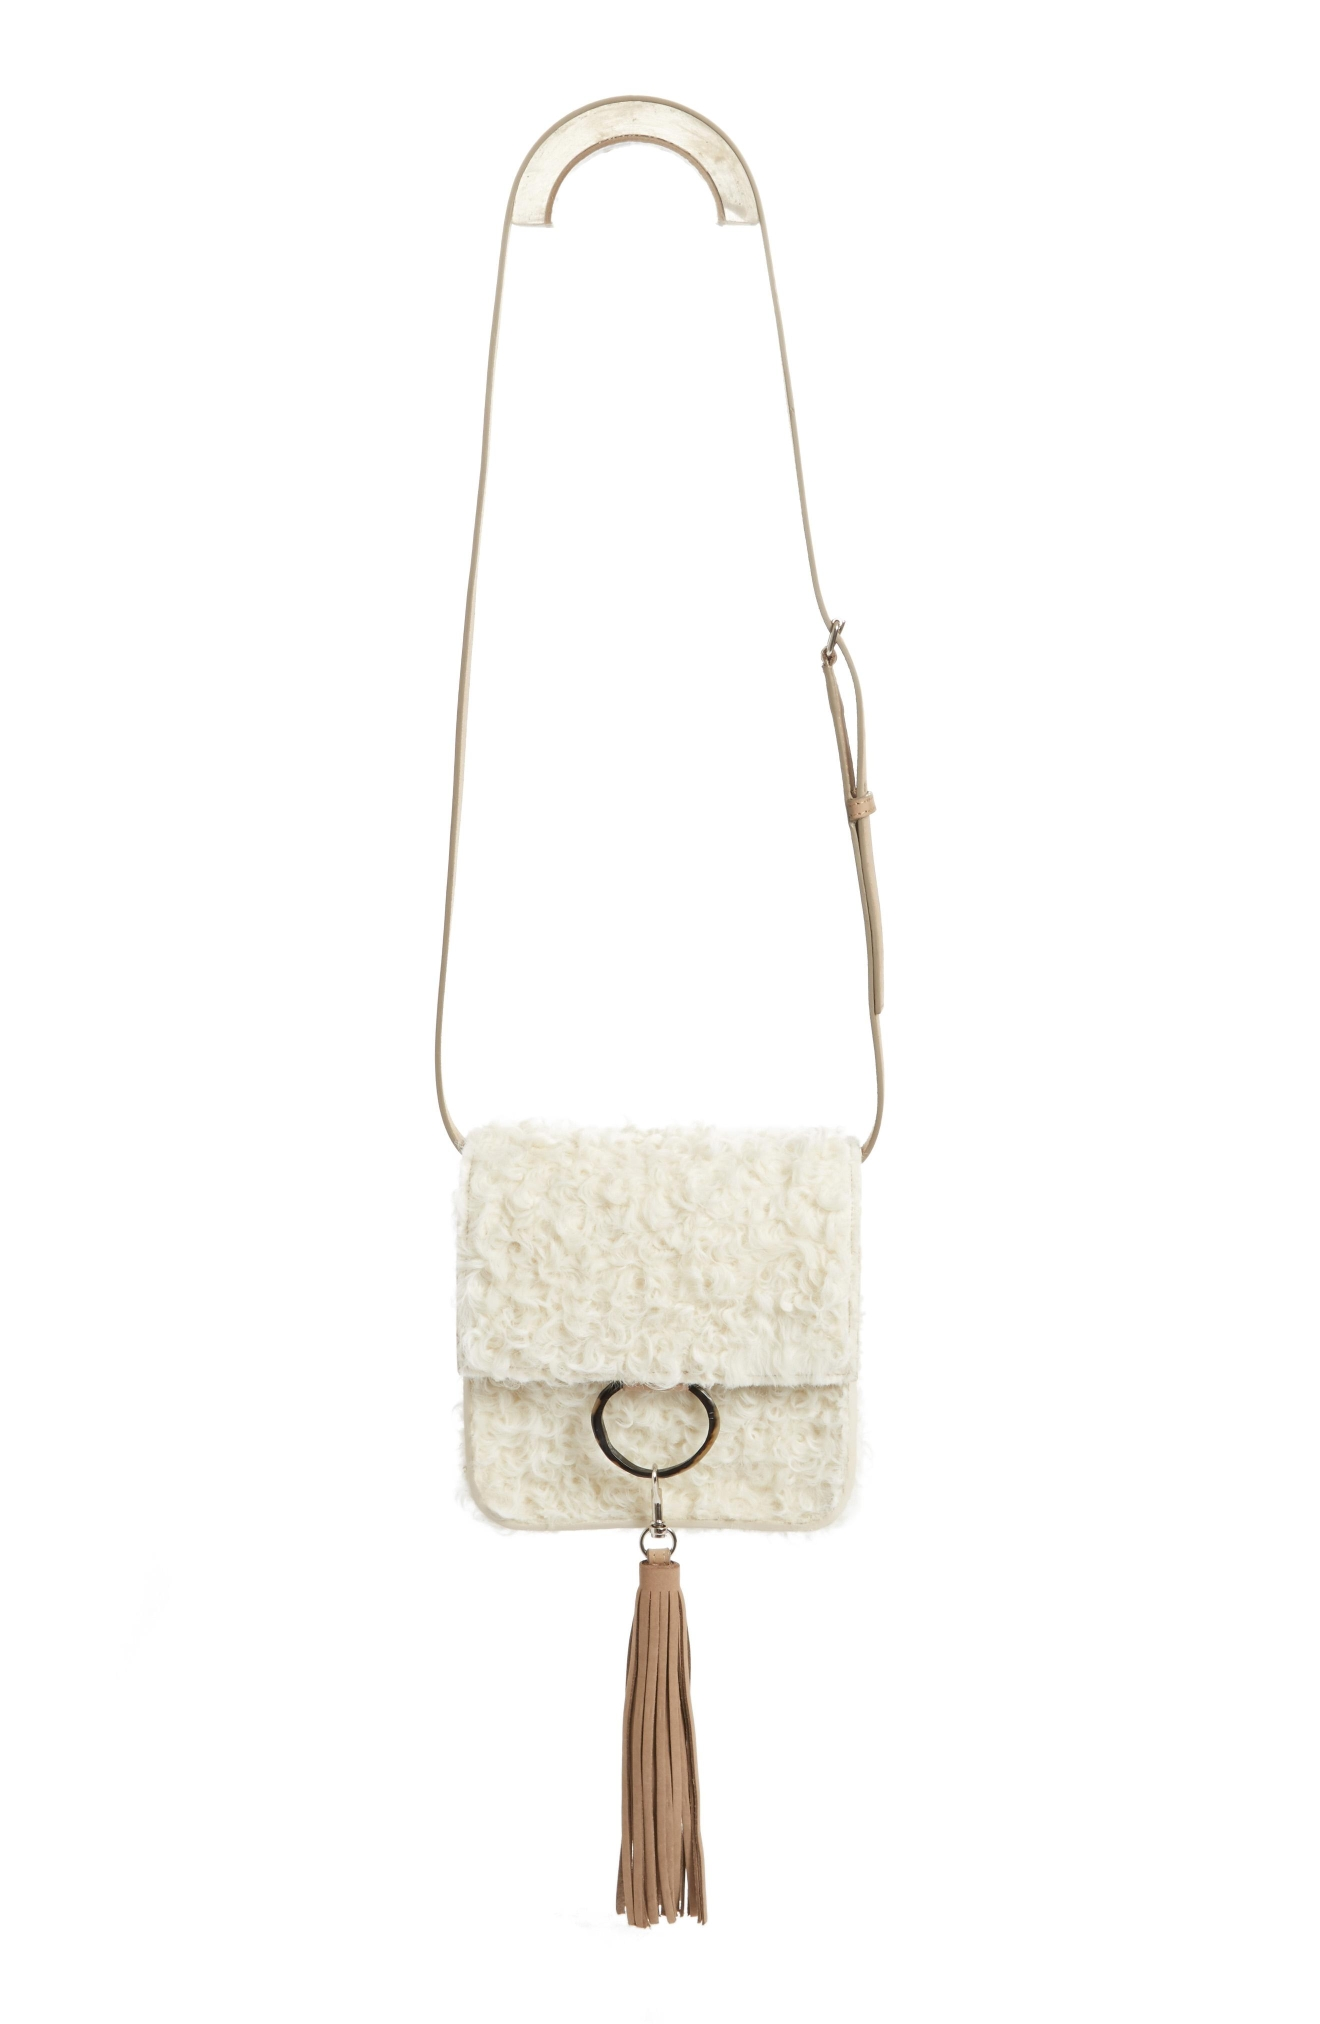 Brother Vellies Palma Bag - $895. Get it at nordstrom.com/space. (Image: Nordstrom)